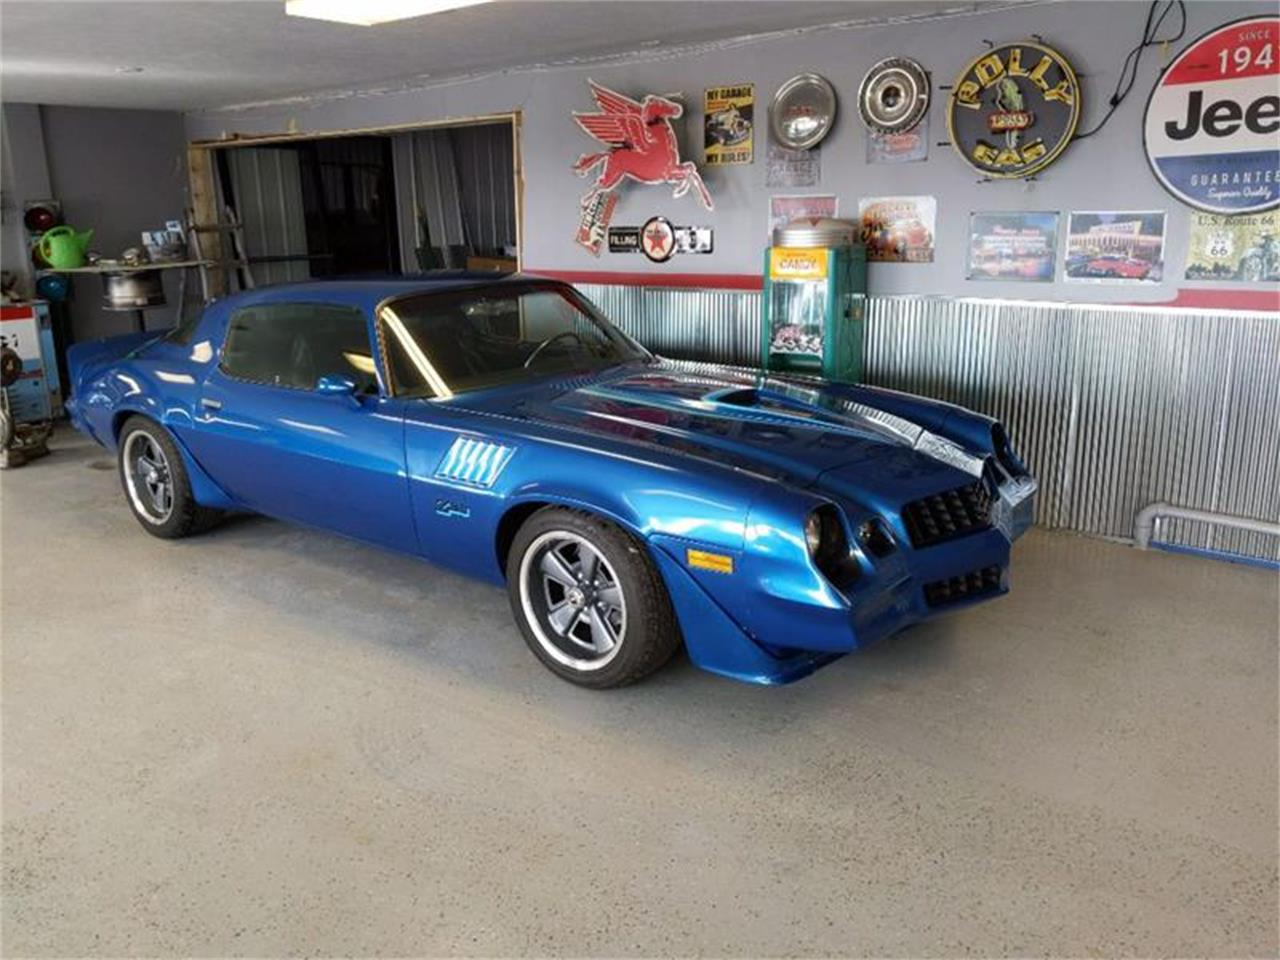 Large Picture of 1978 Camaro located in Spirit Lake Iowa Auction Vehicle - PX97